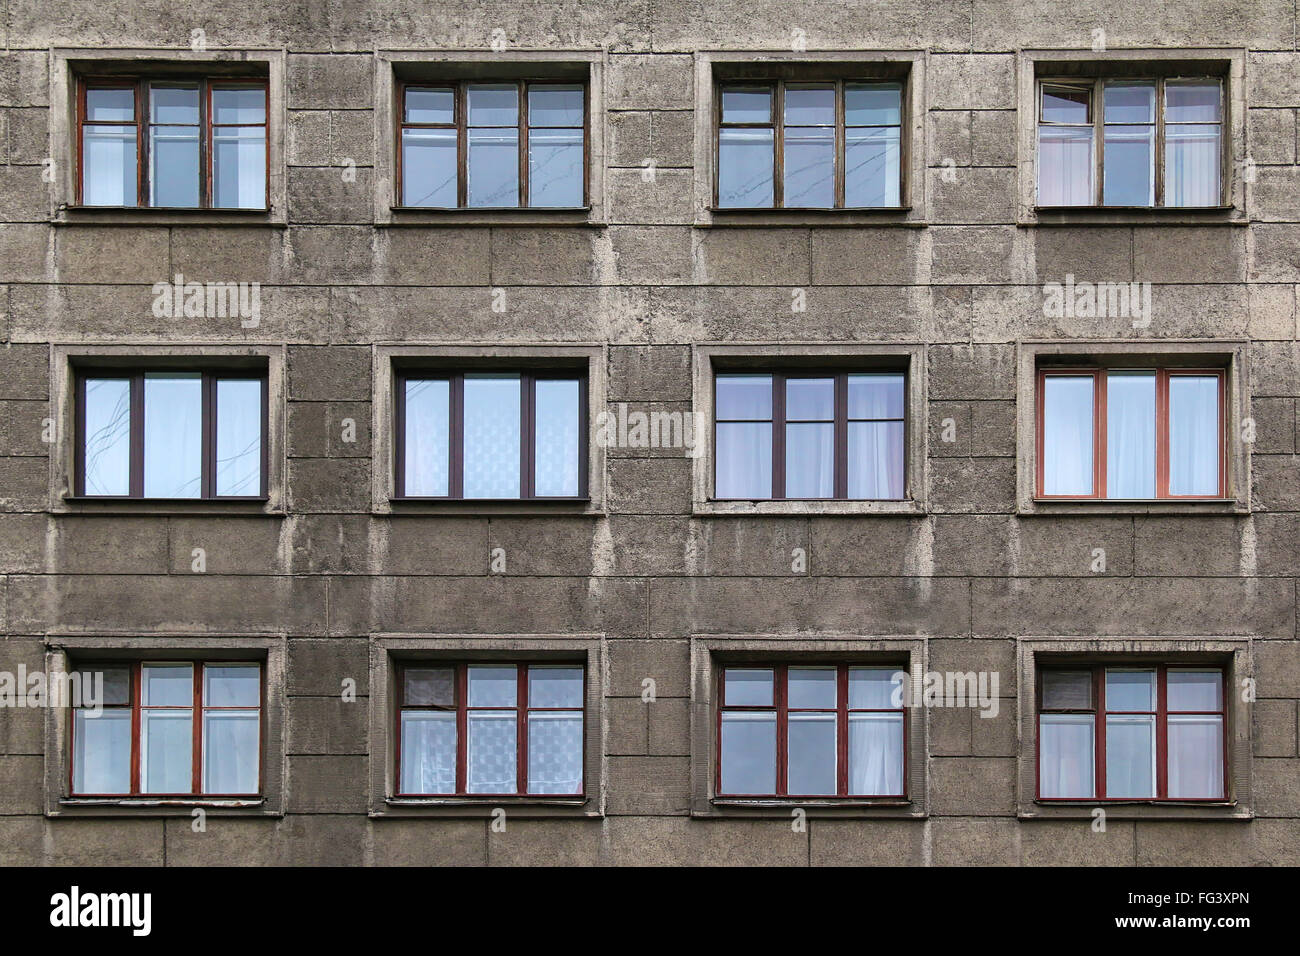 Many windows in row on facade of urban apartment building for Exterior view of building